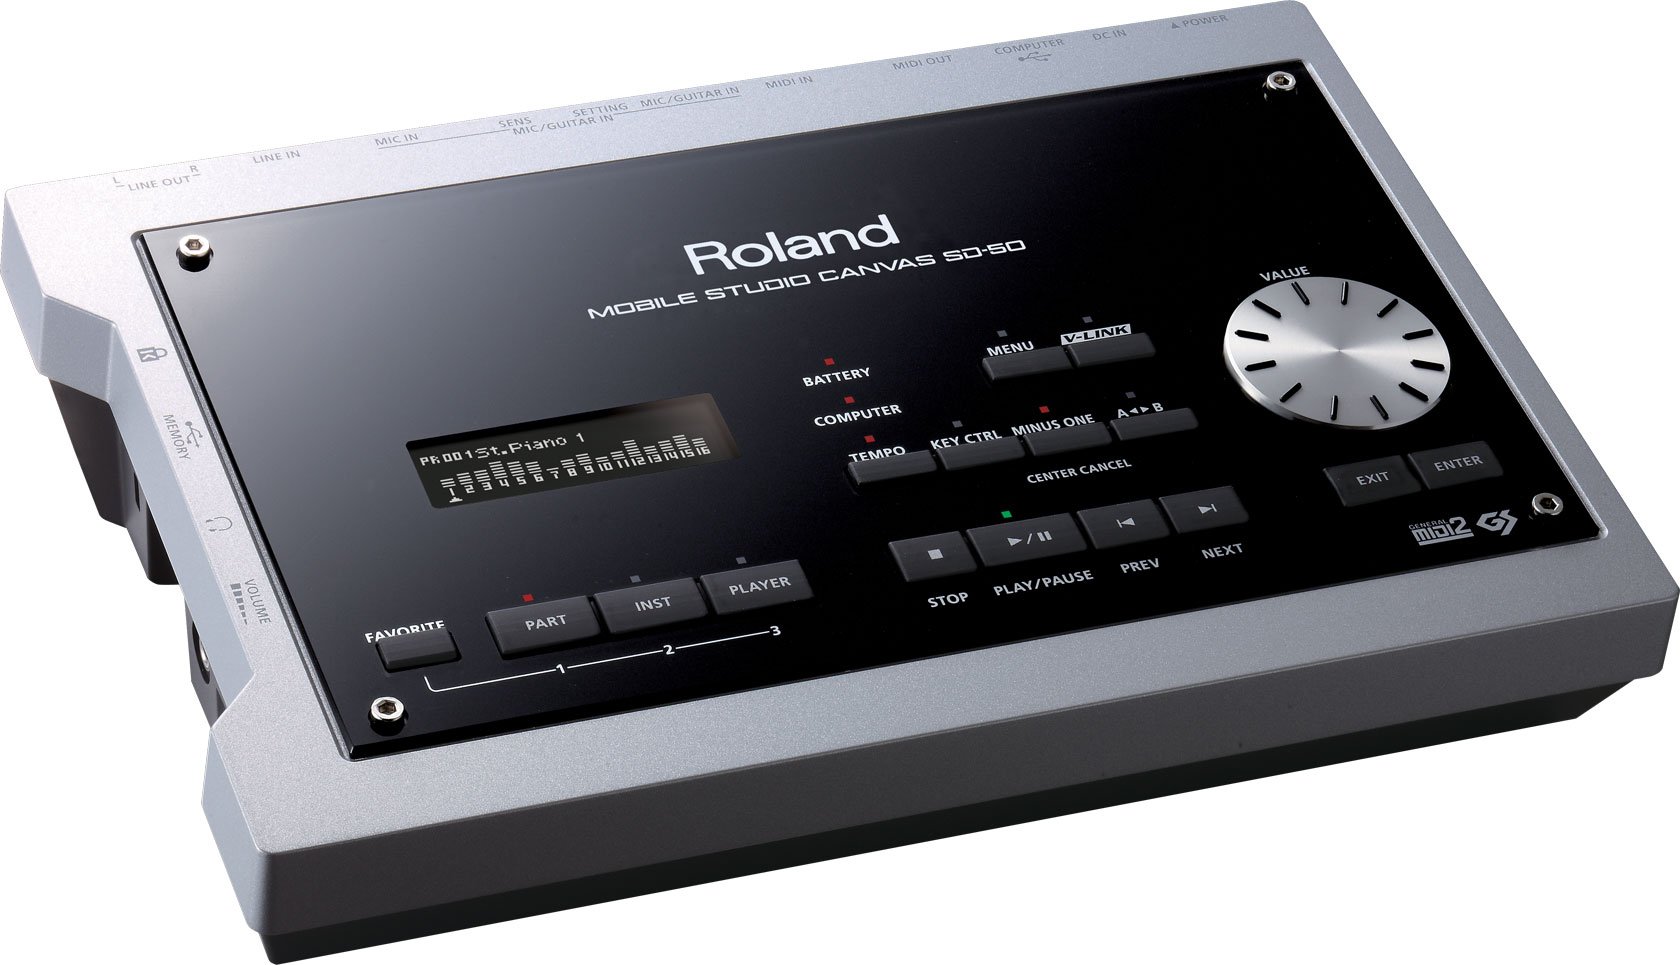 Roland - Mobile Studio Canvas | Sound Module with DAW Software